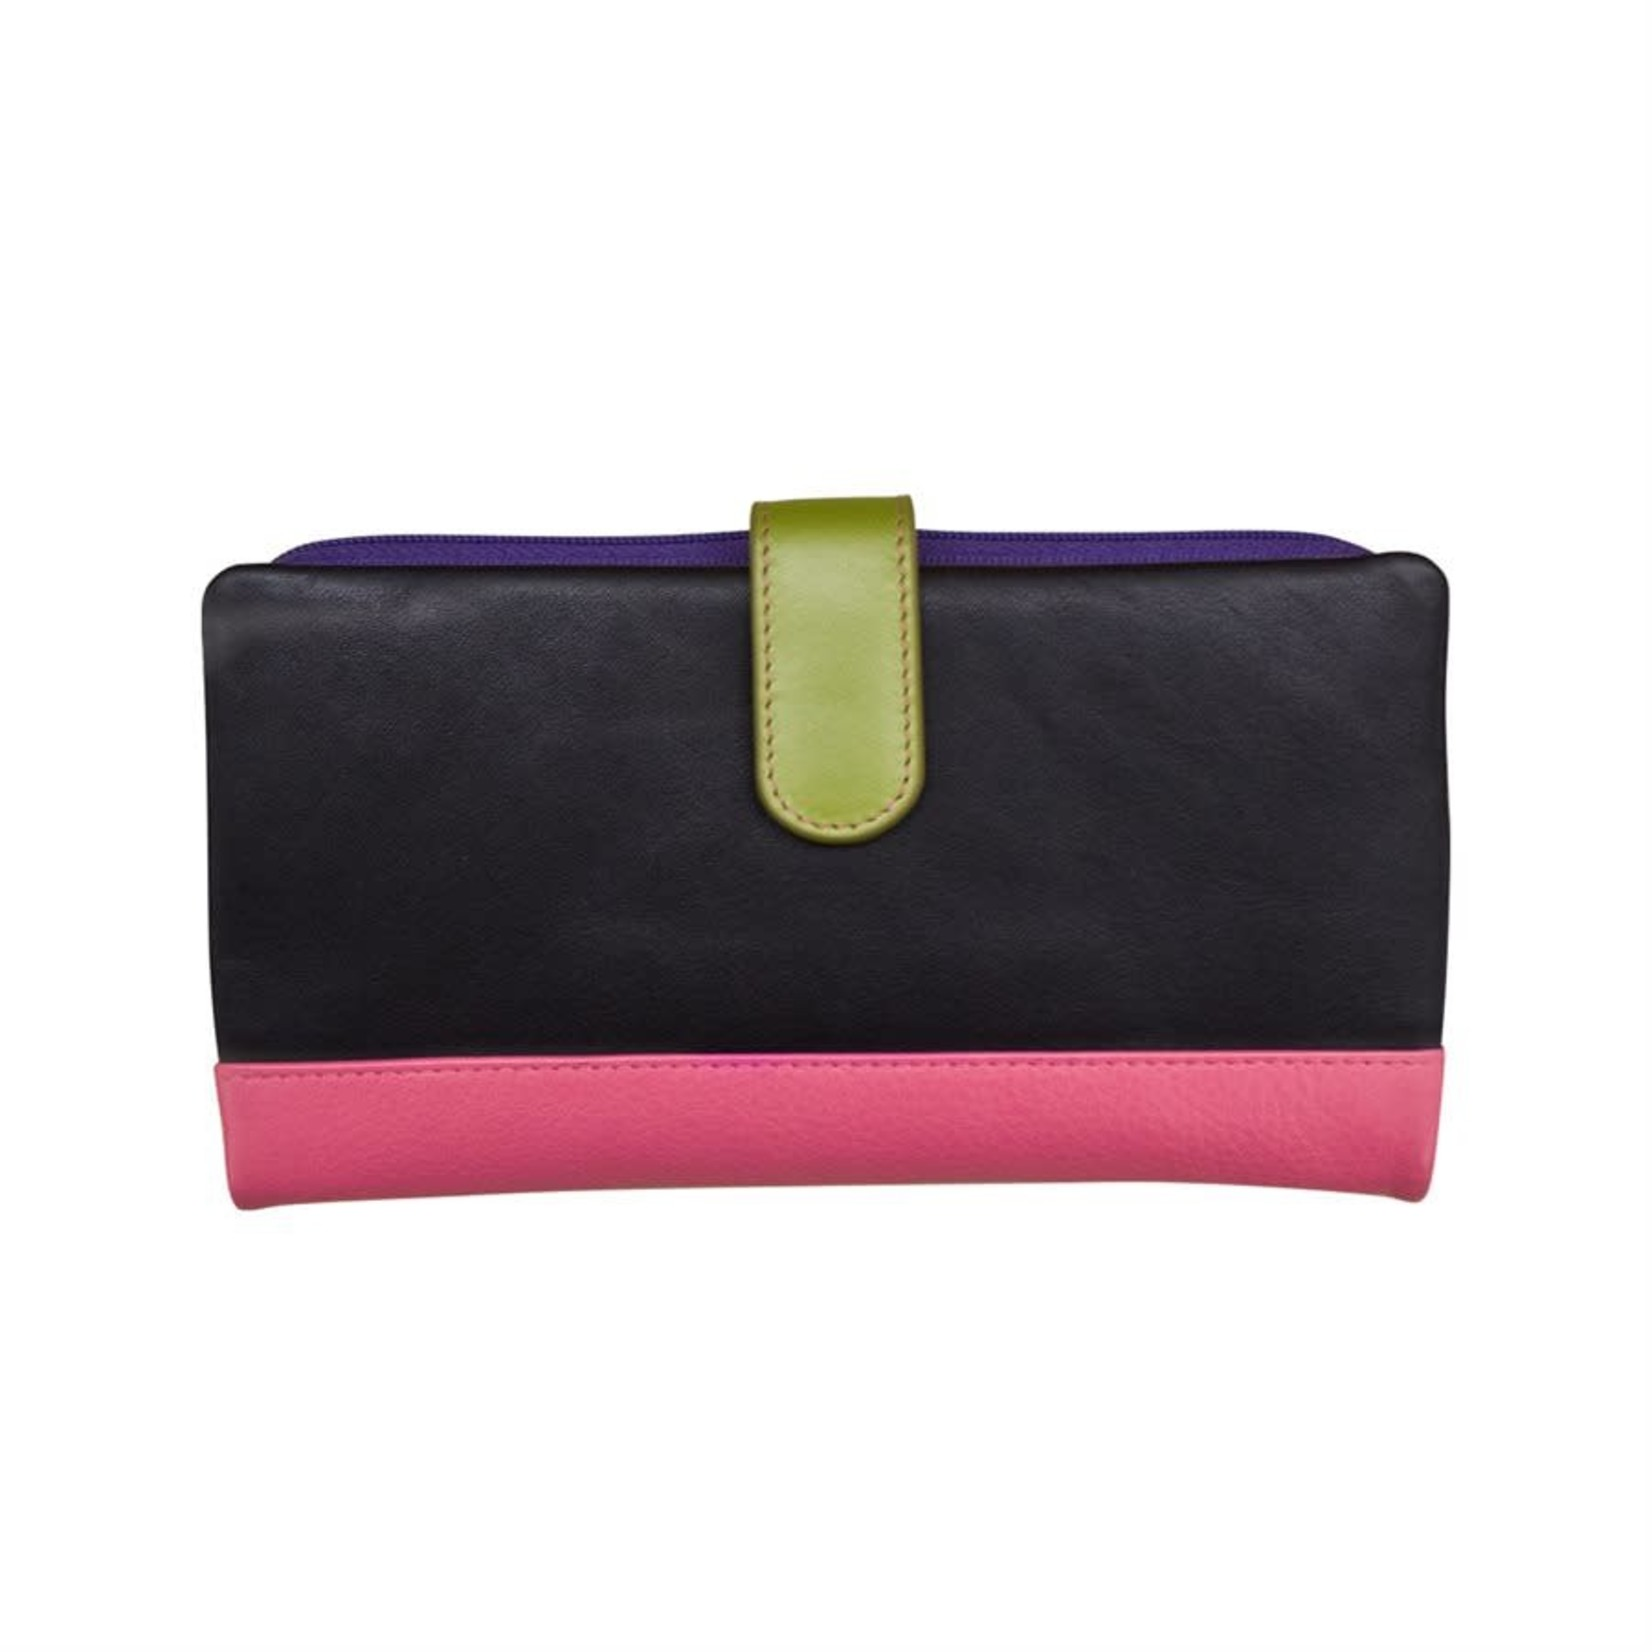 Leather Handbags and Accessories 7420 Black Brights - RFID Smartphone Wallet